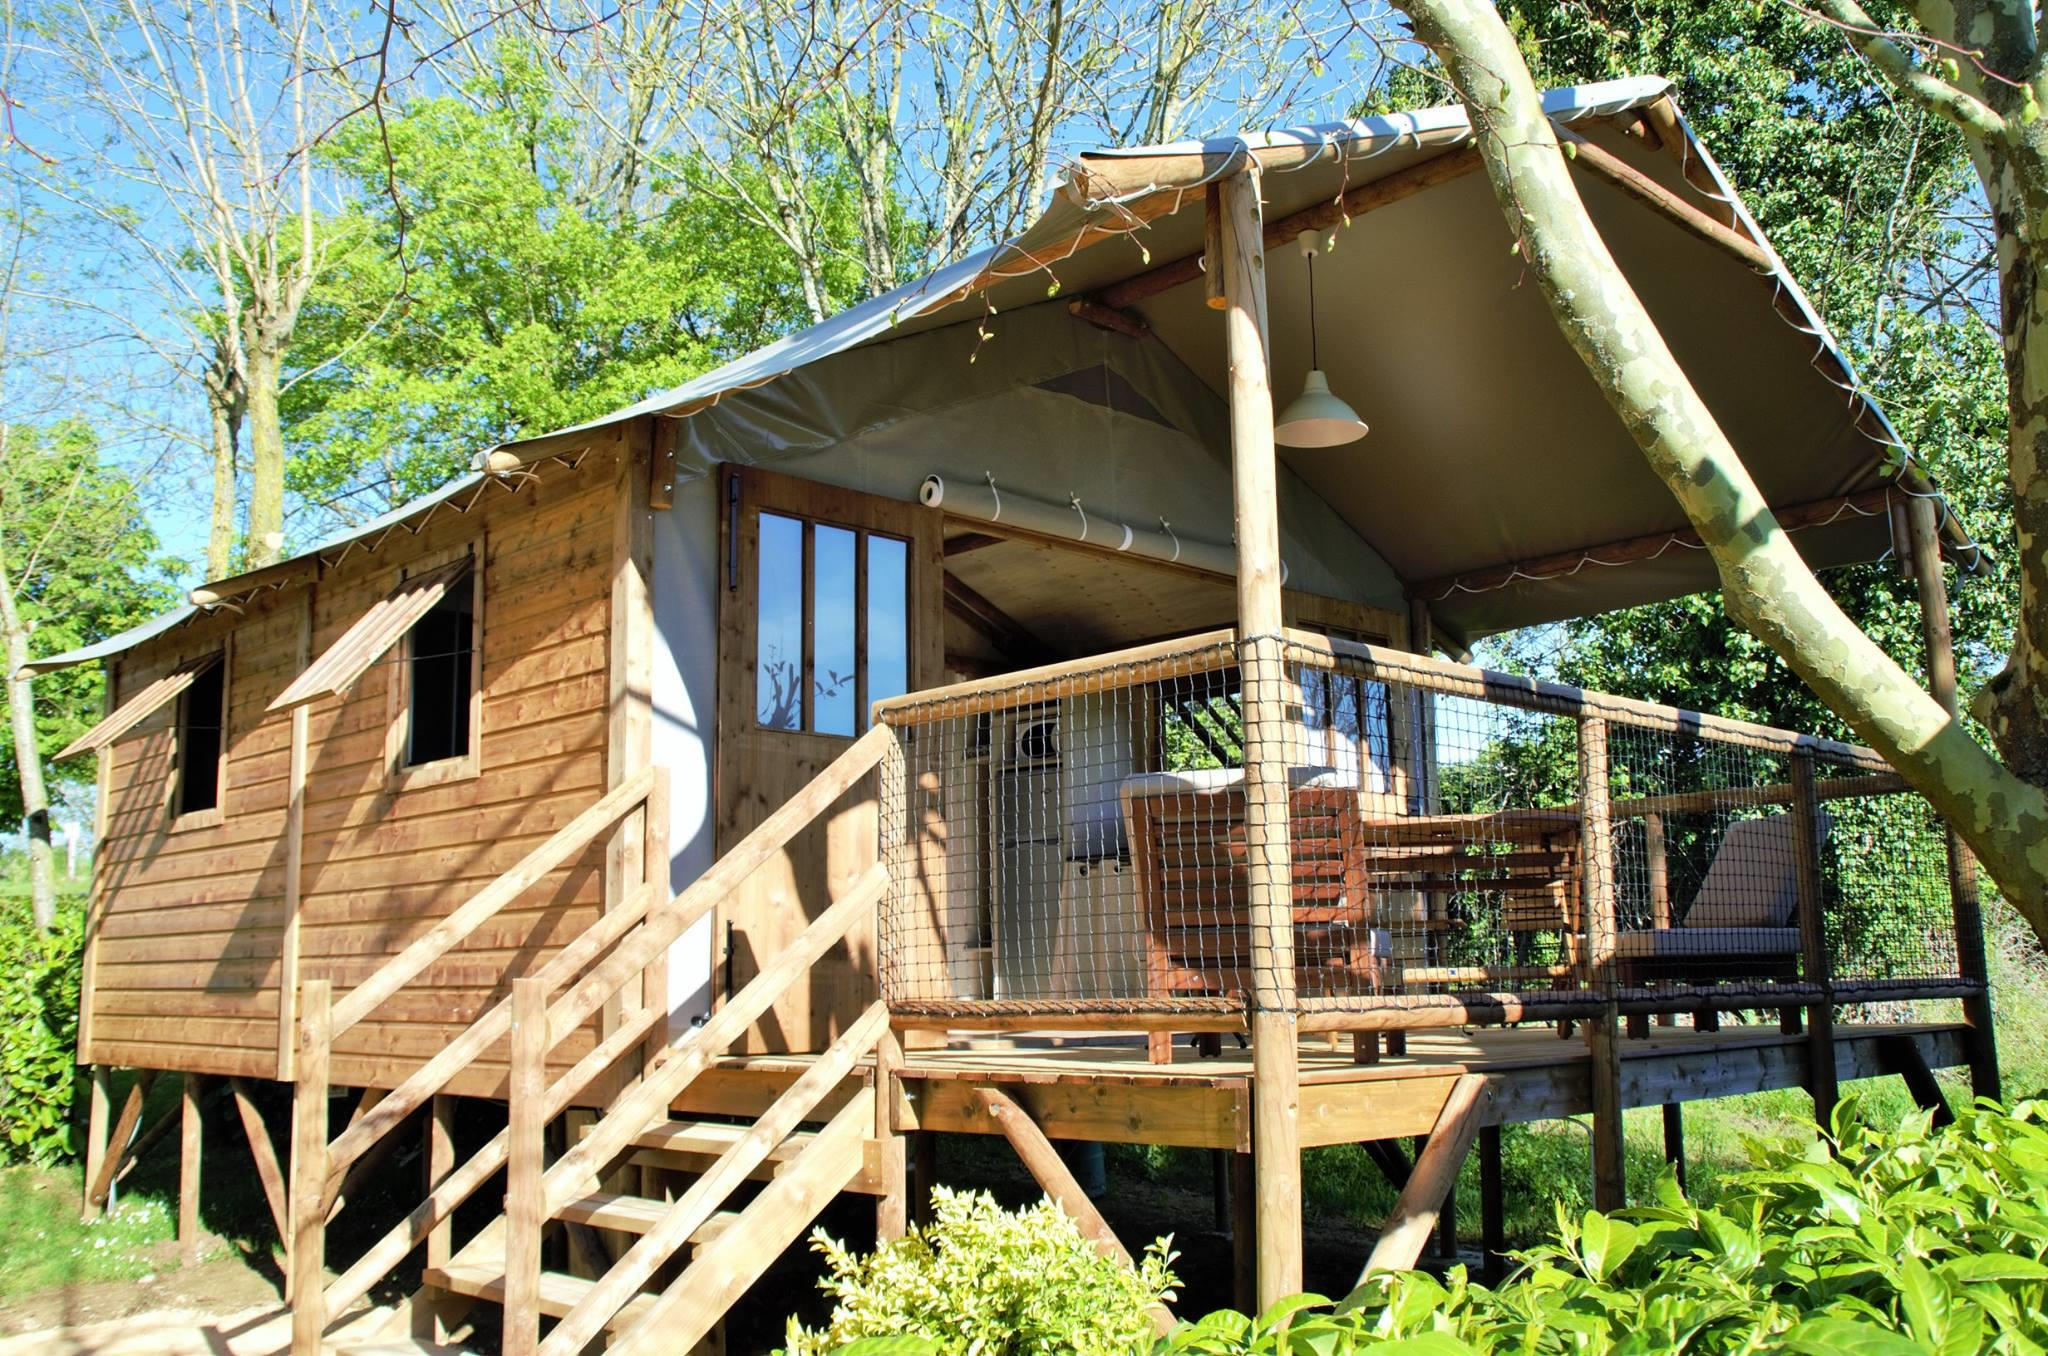 Camping le Pigeonnier, Miers, Lot